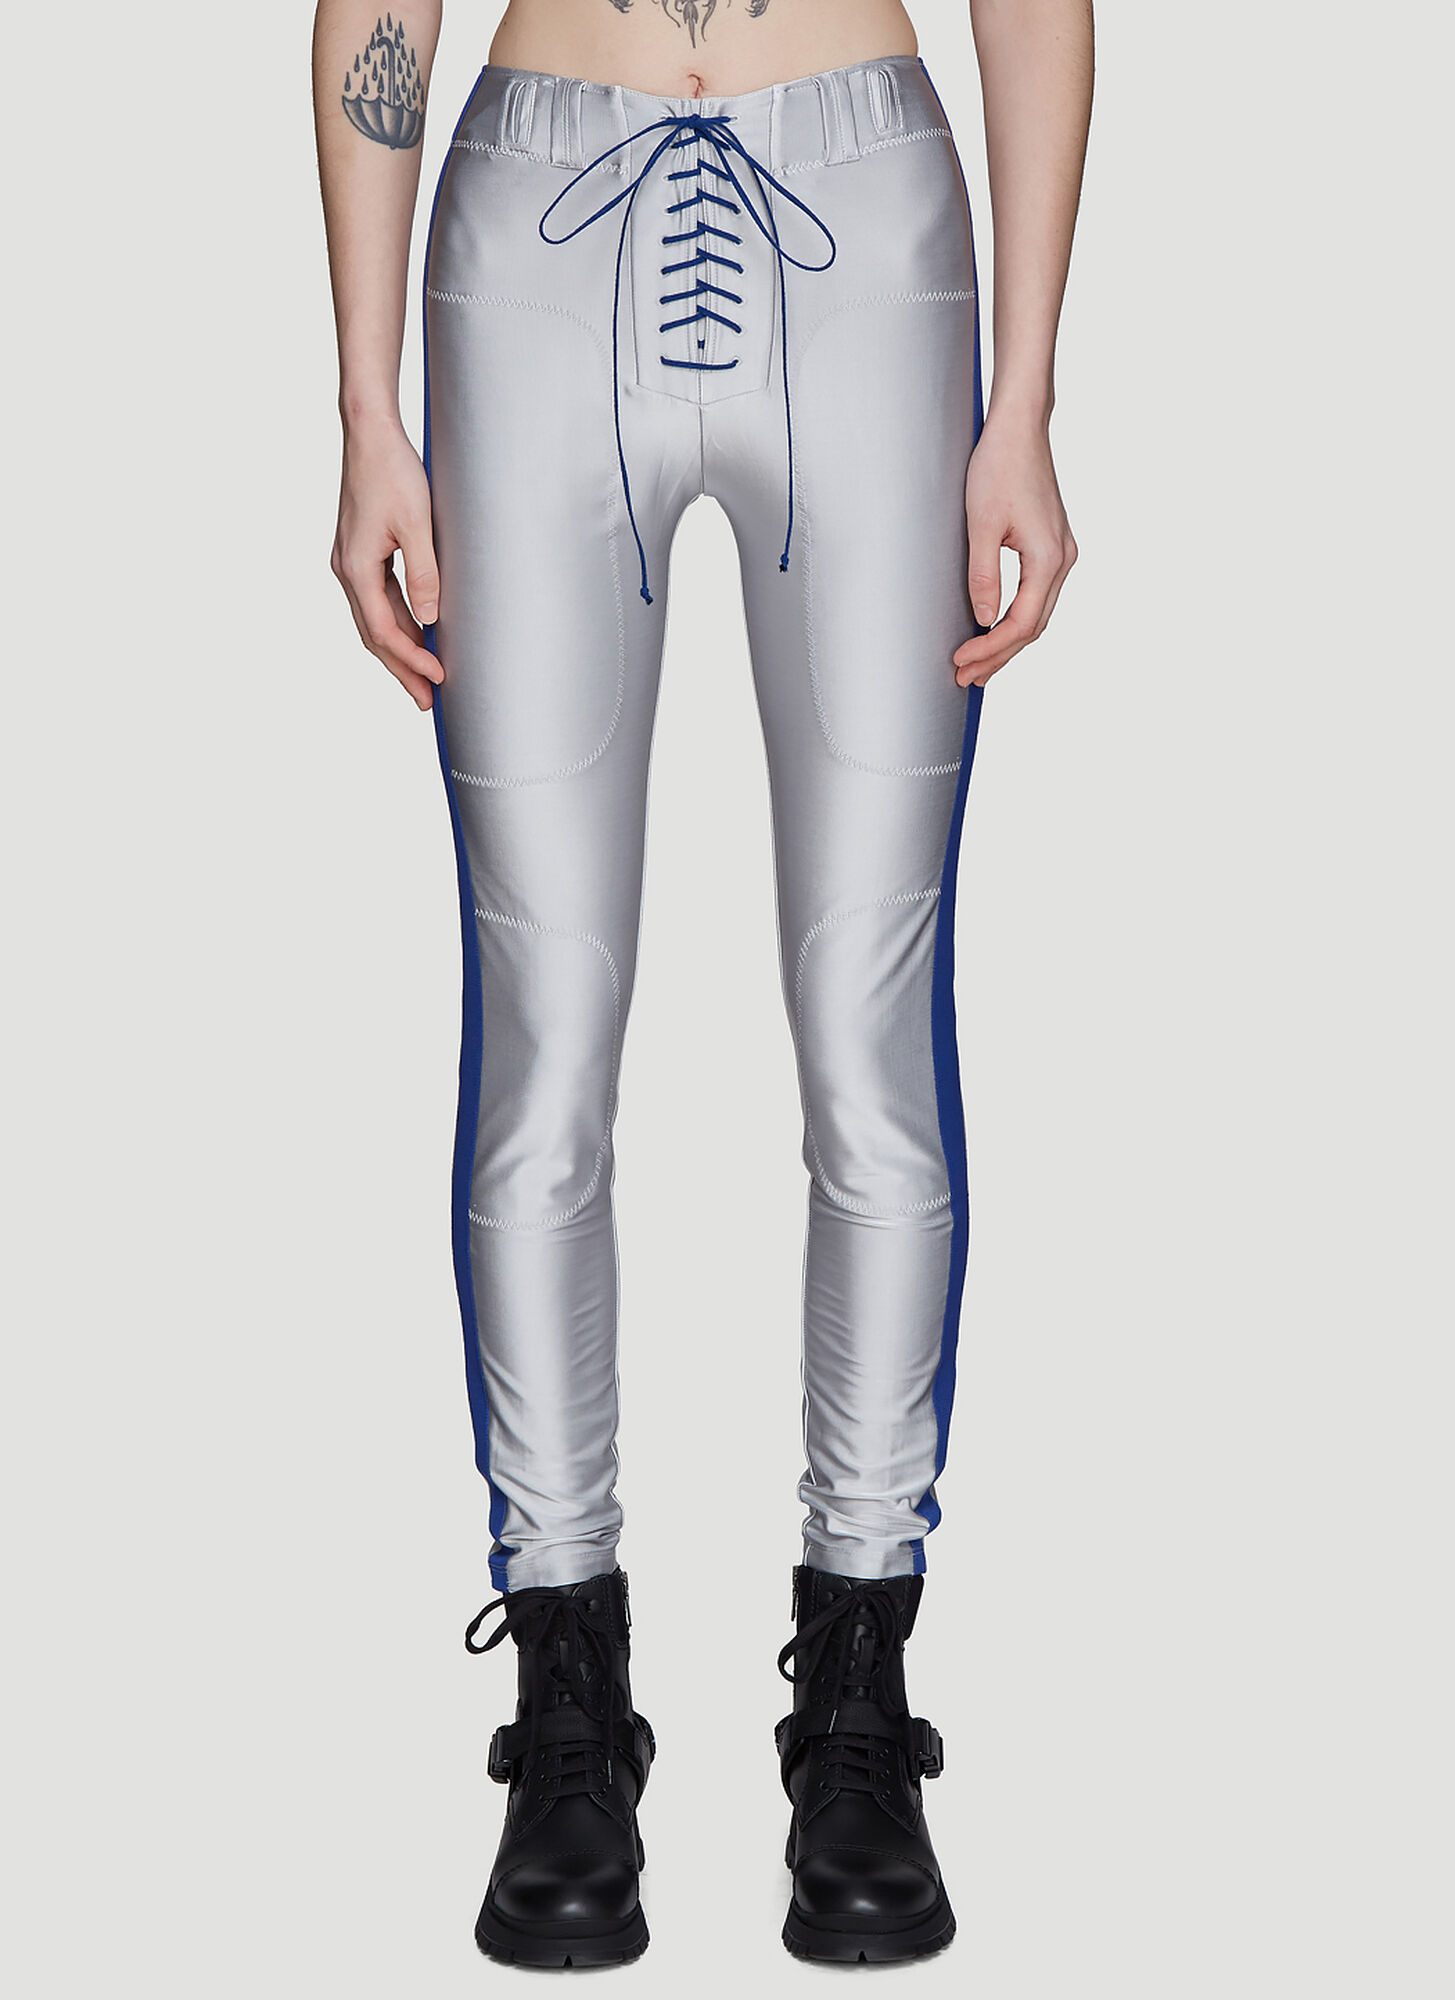 Unravel Project Lace-up Metallic Pants in Silver